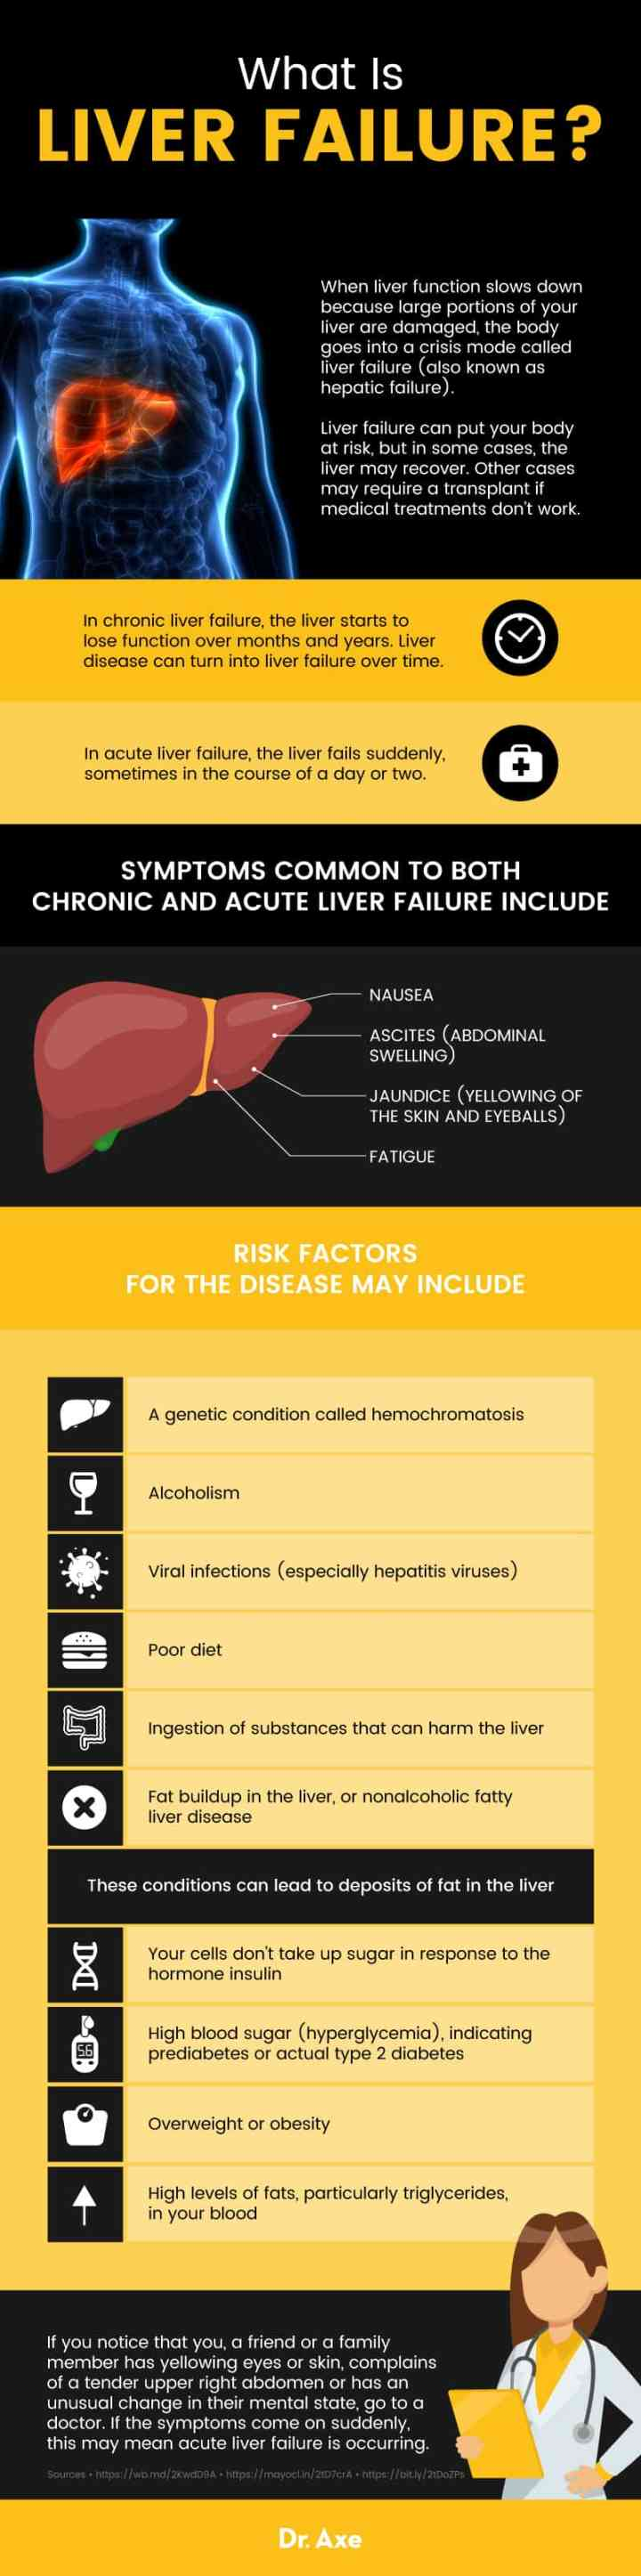 What is liver failure? - Dr. Axe